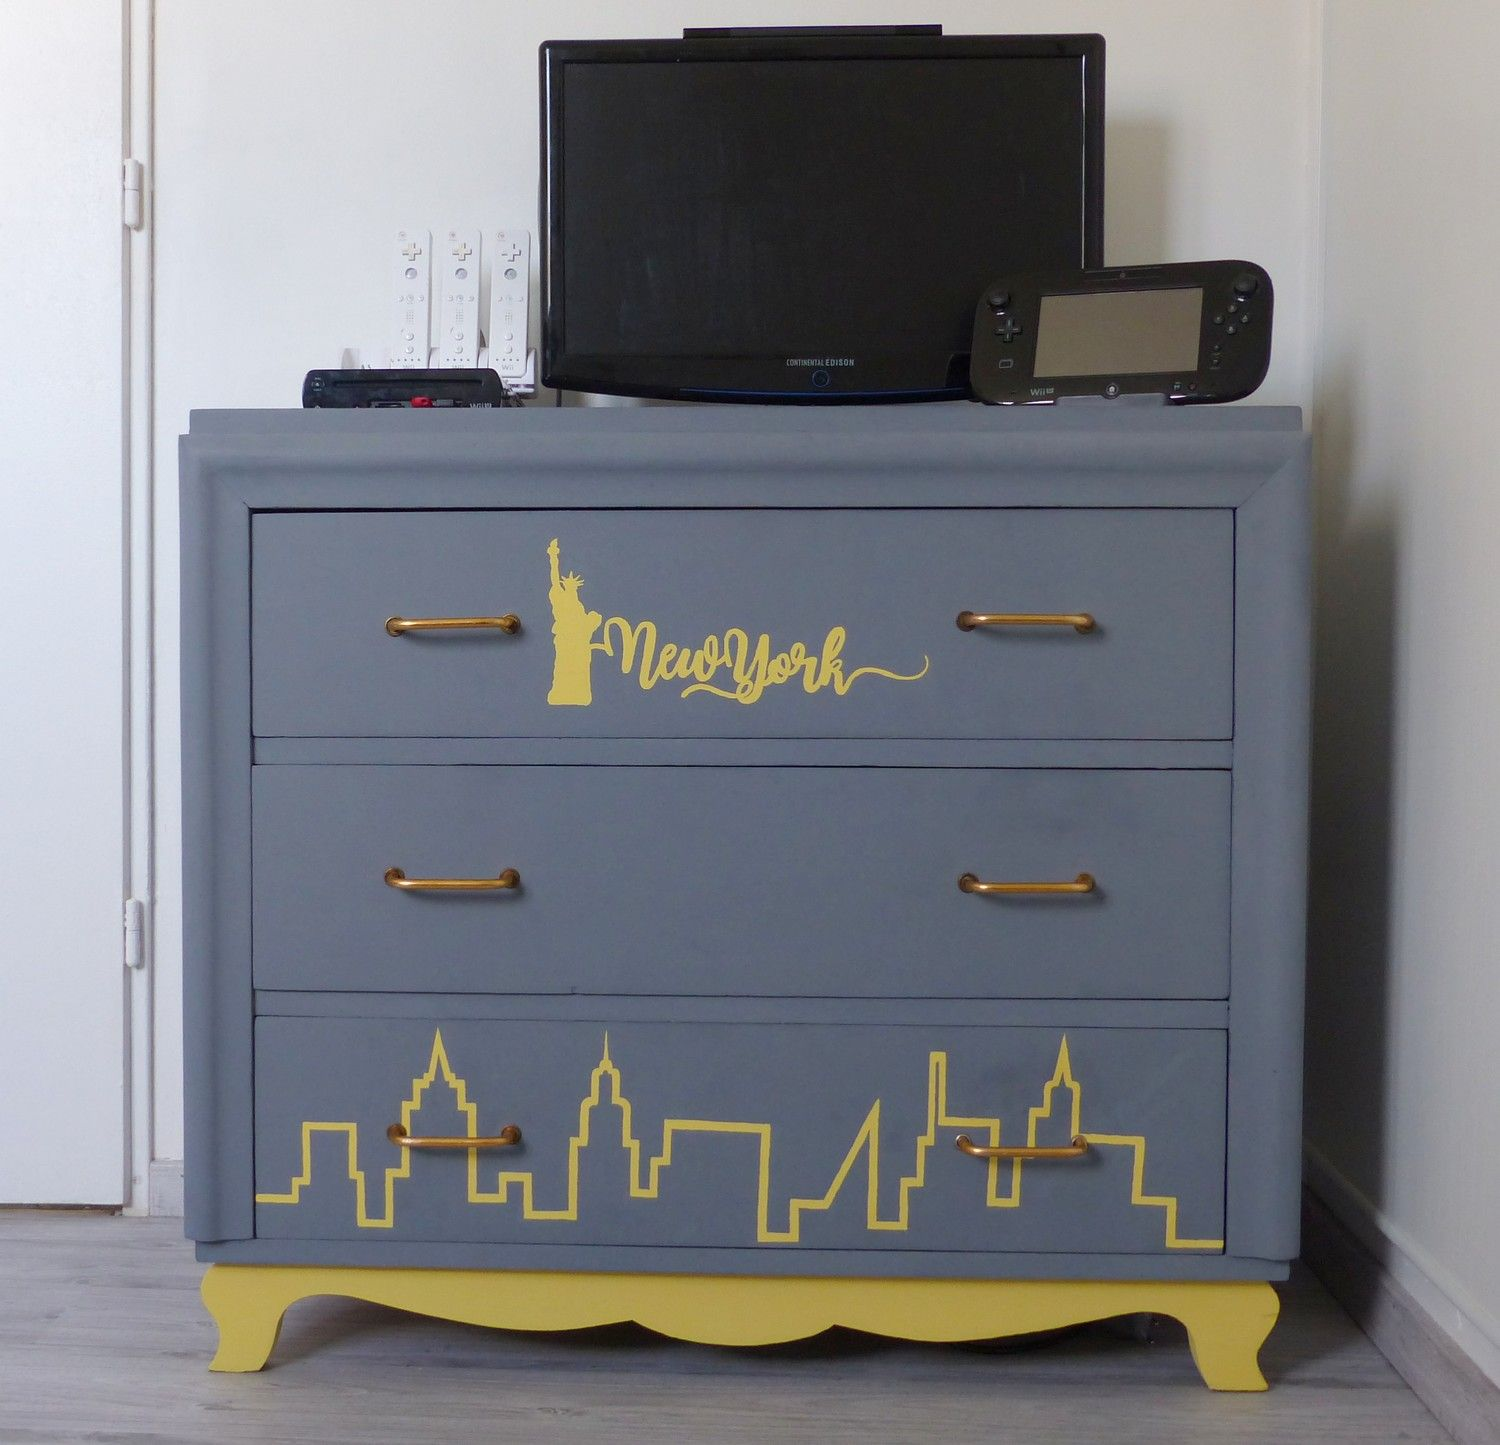 Relooking Meuble Commode New York Idee Deco Chambre Ado Gris Jaune Manhattan Deco Chambre New York Relooking Meuble Idee Deco Chambre Ado